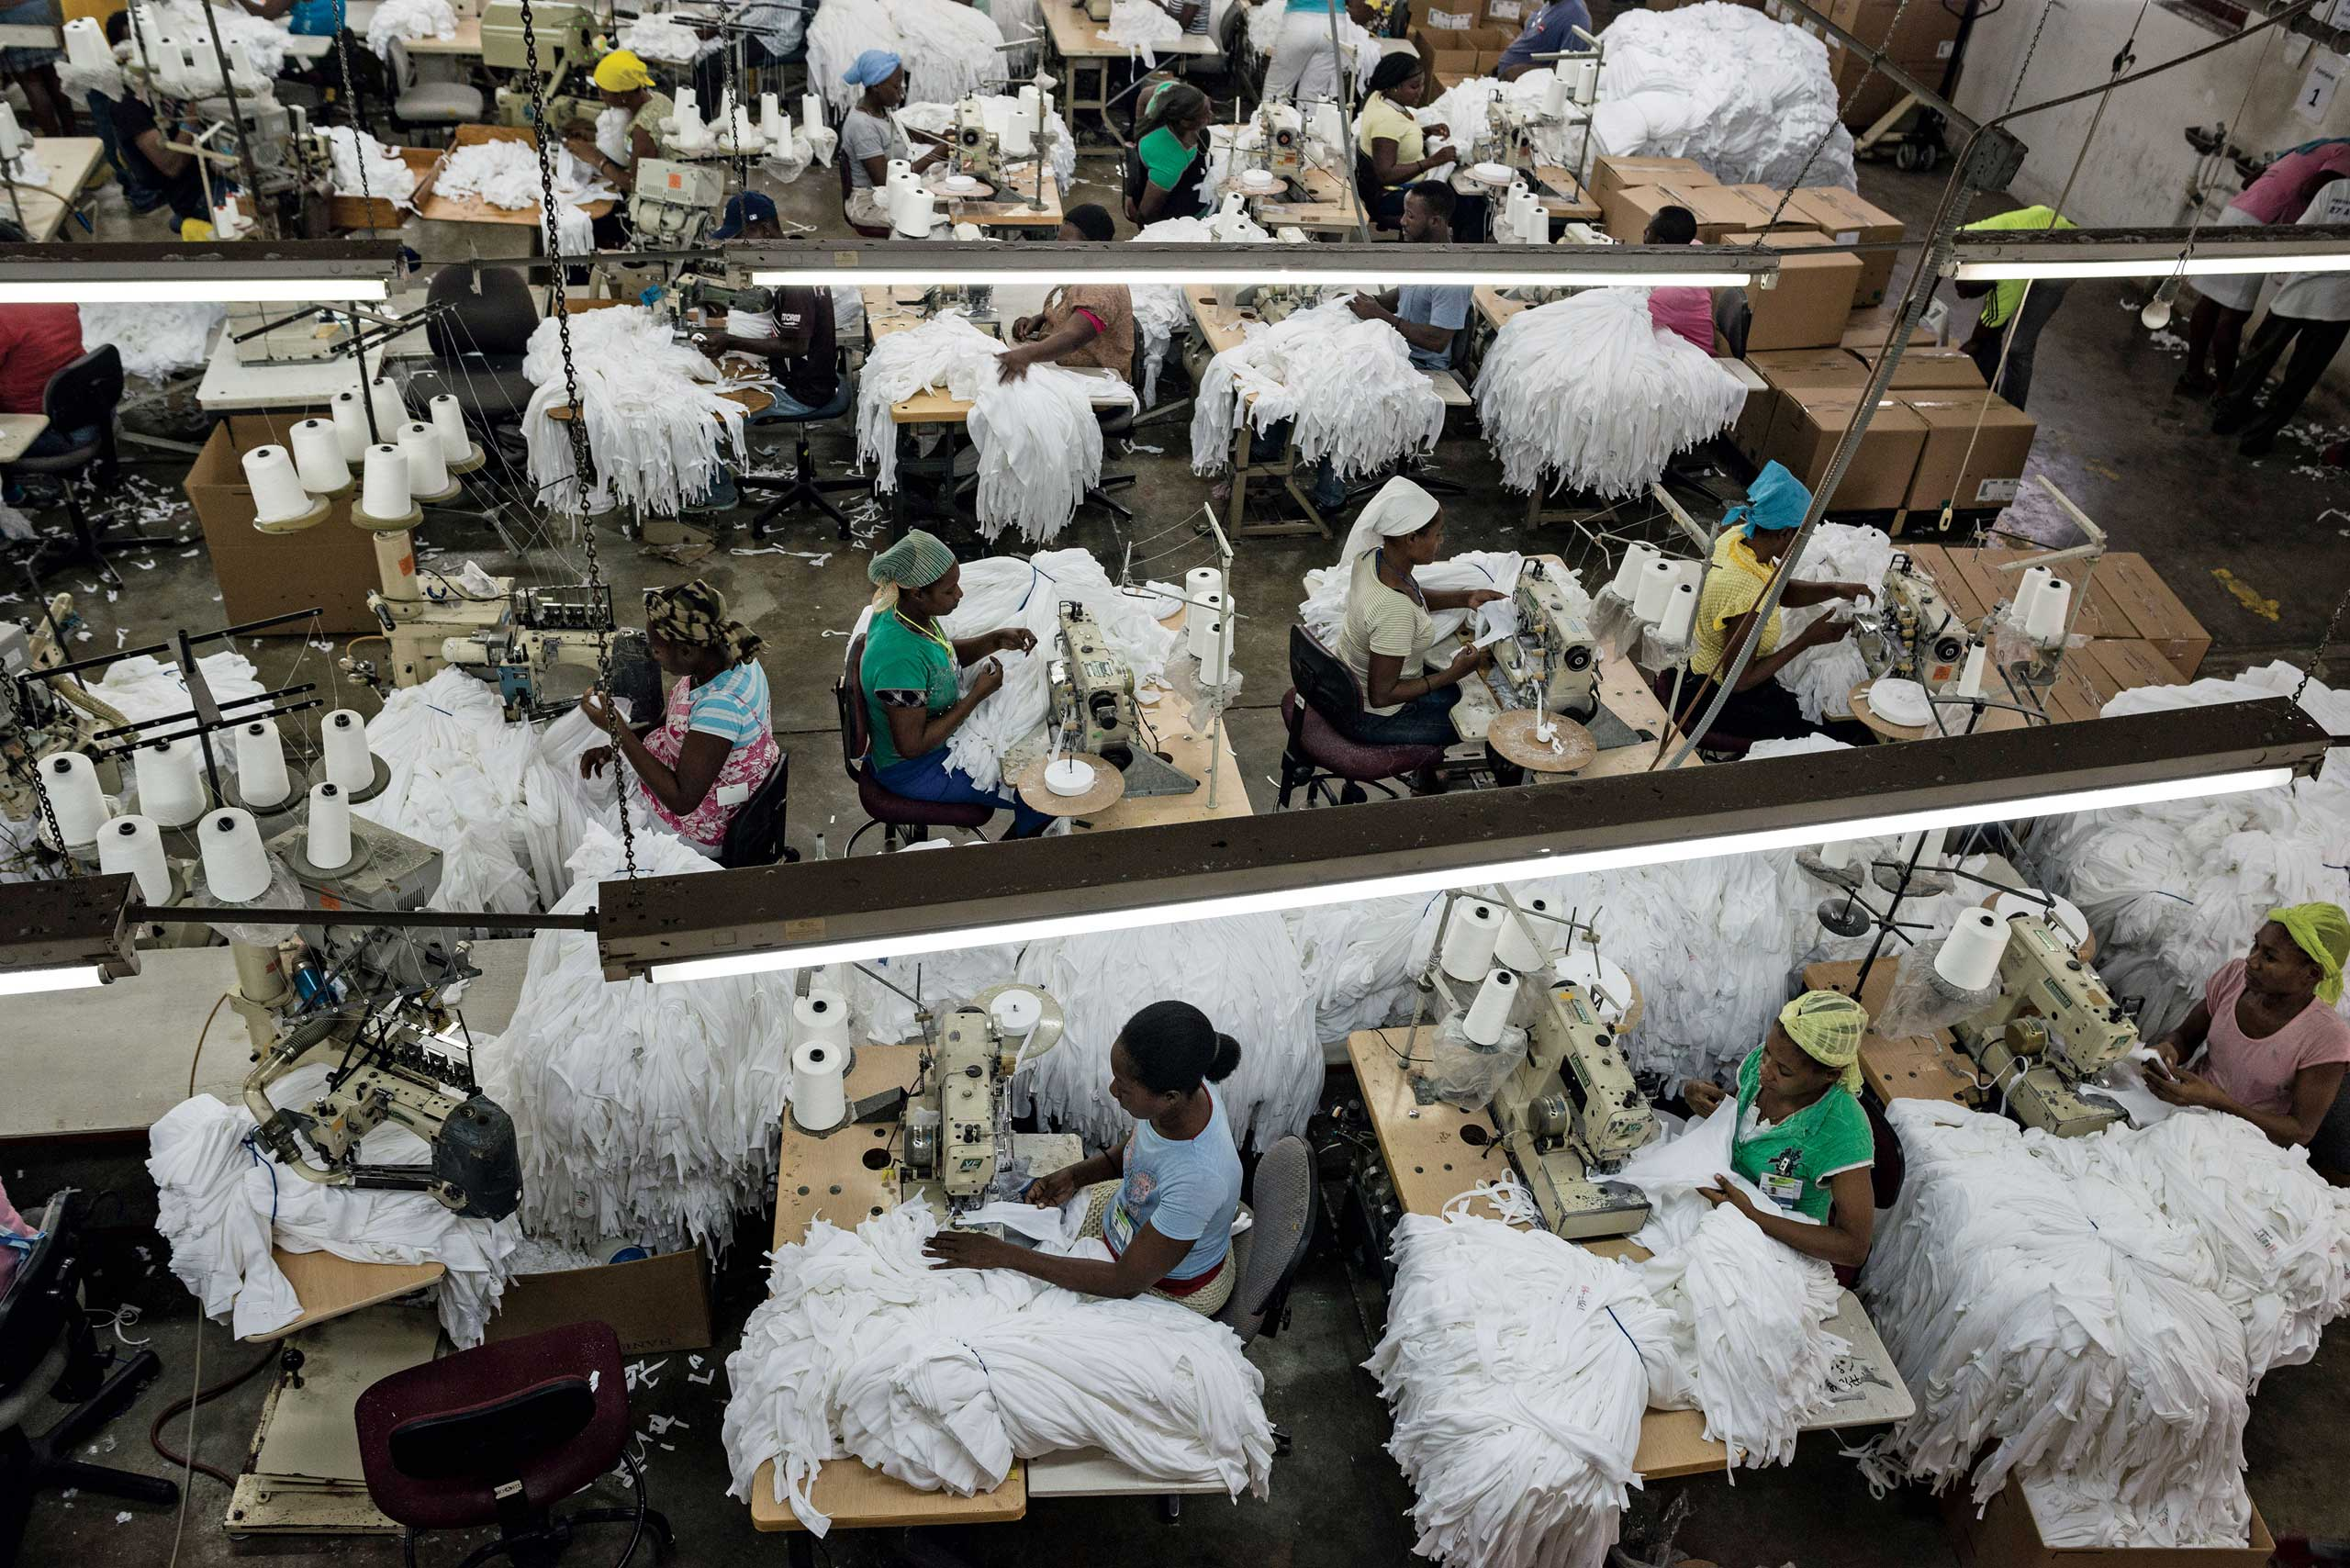 Bloomberg Businessweek: Rebuilding HaitiIn May 2010, the U.S. passed the Haiti Economic Lift Program (HELP) Act allowing duty-free imports of some Haitian goods, including textiles. The apparel sector accounts for 90 percent of exports, almost one-twentieth of Haiti's gross domestic product. Clothing imports from the country include Hanes T-shirts made by Multitex, a Haitian-owned factory.